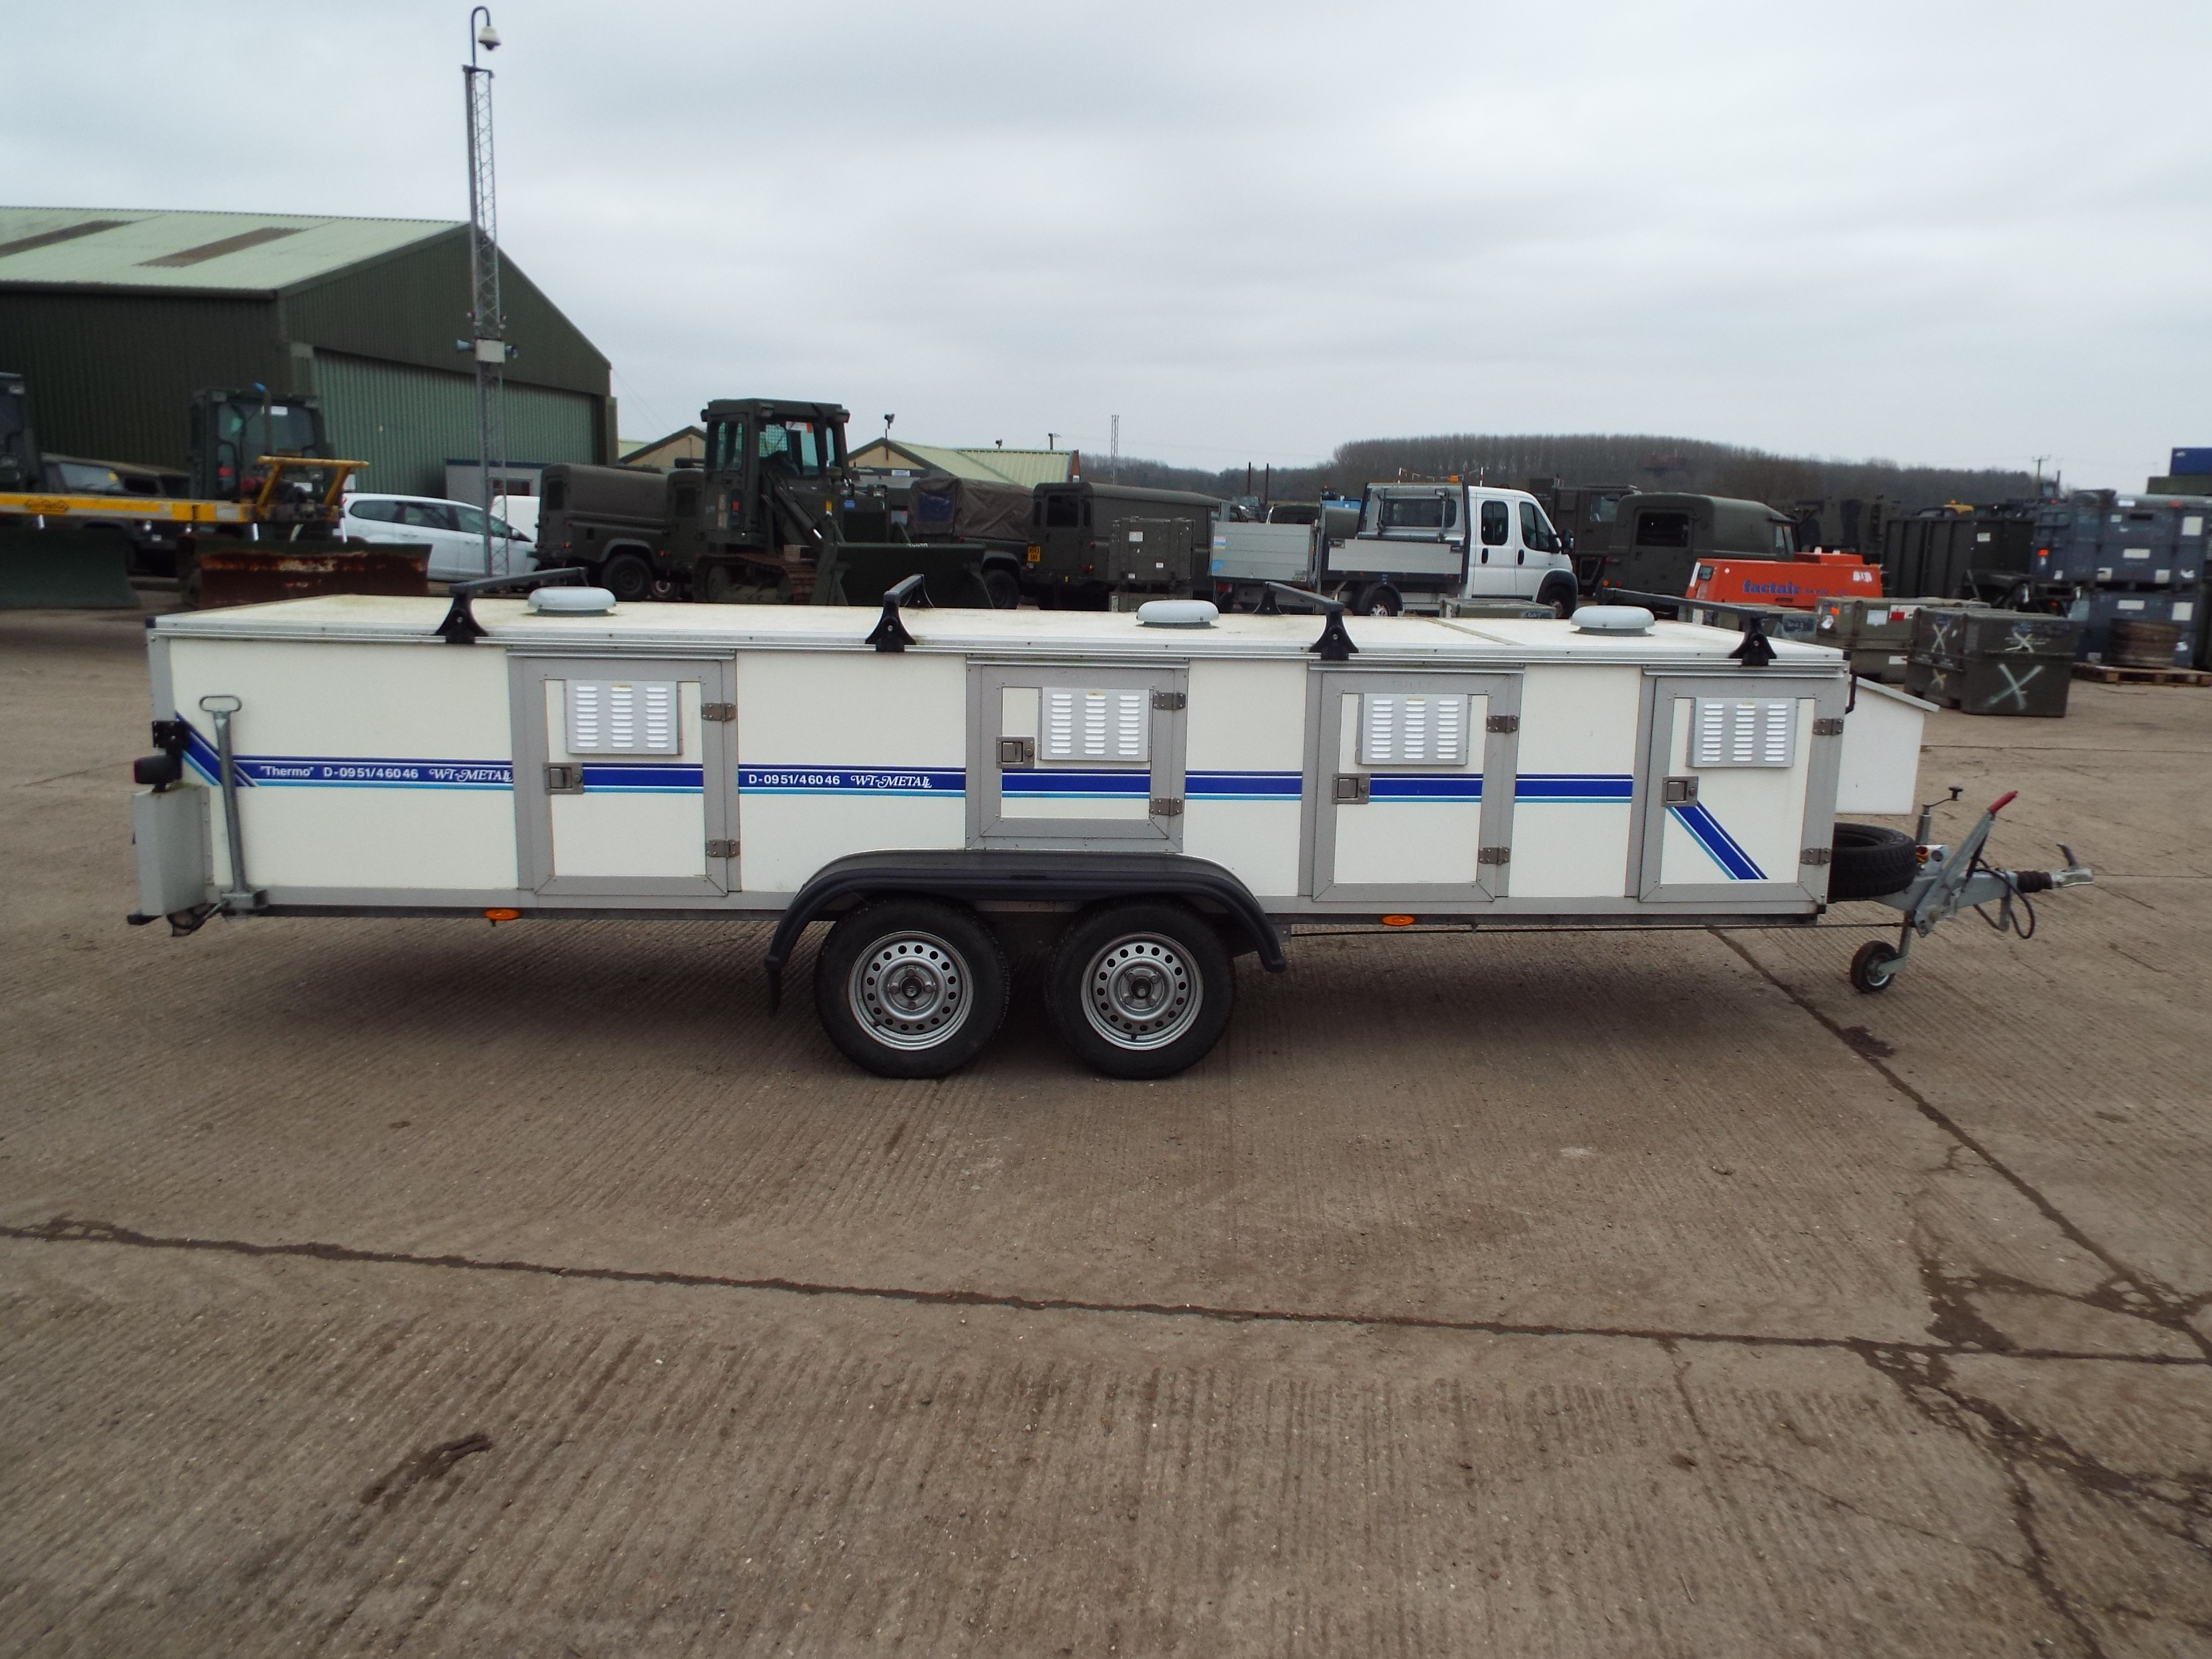 Wt Metall Dog Trailer For Sale Uk